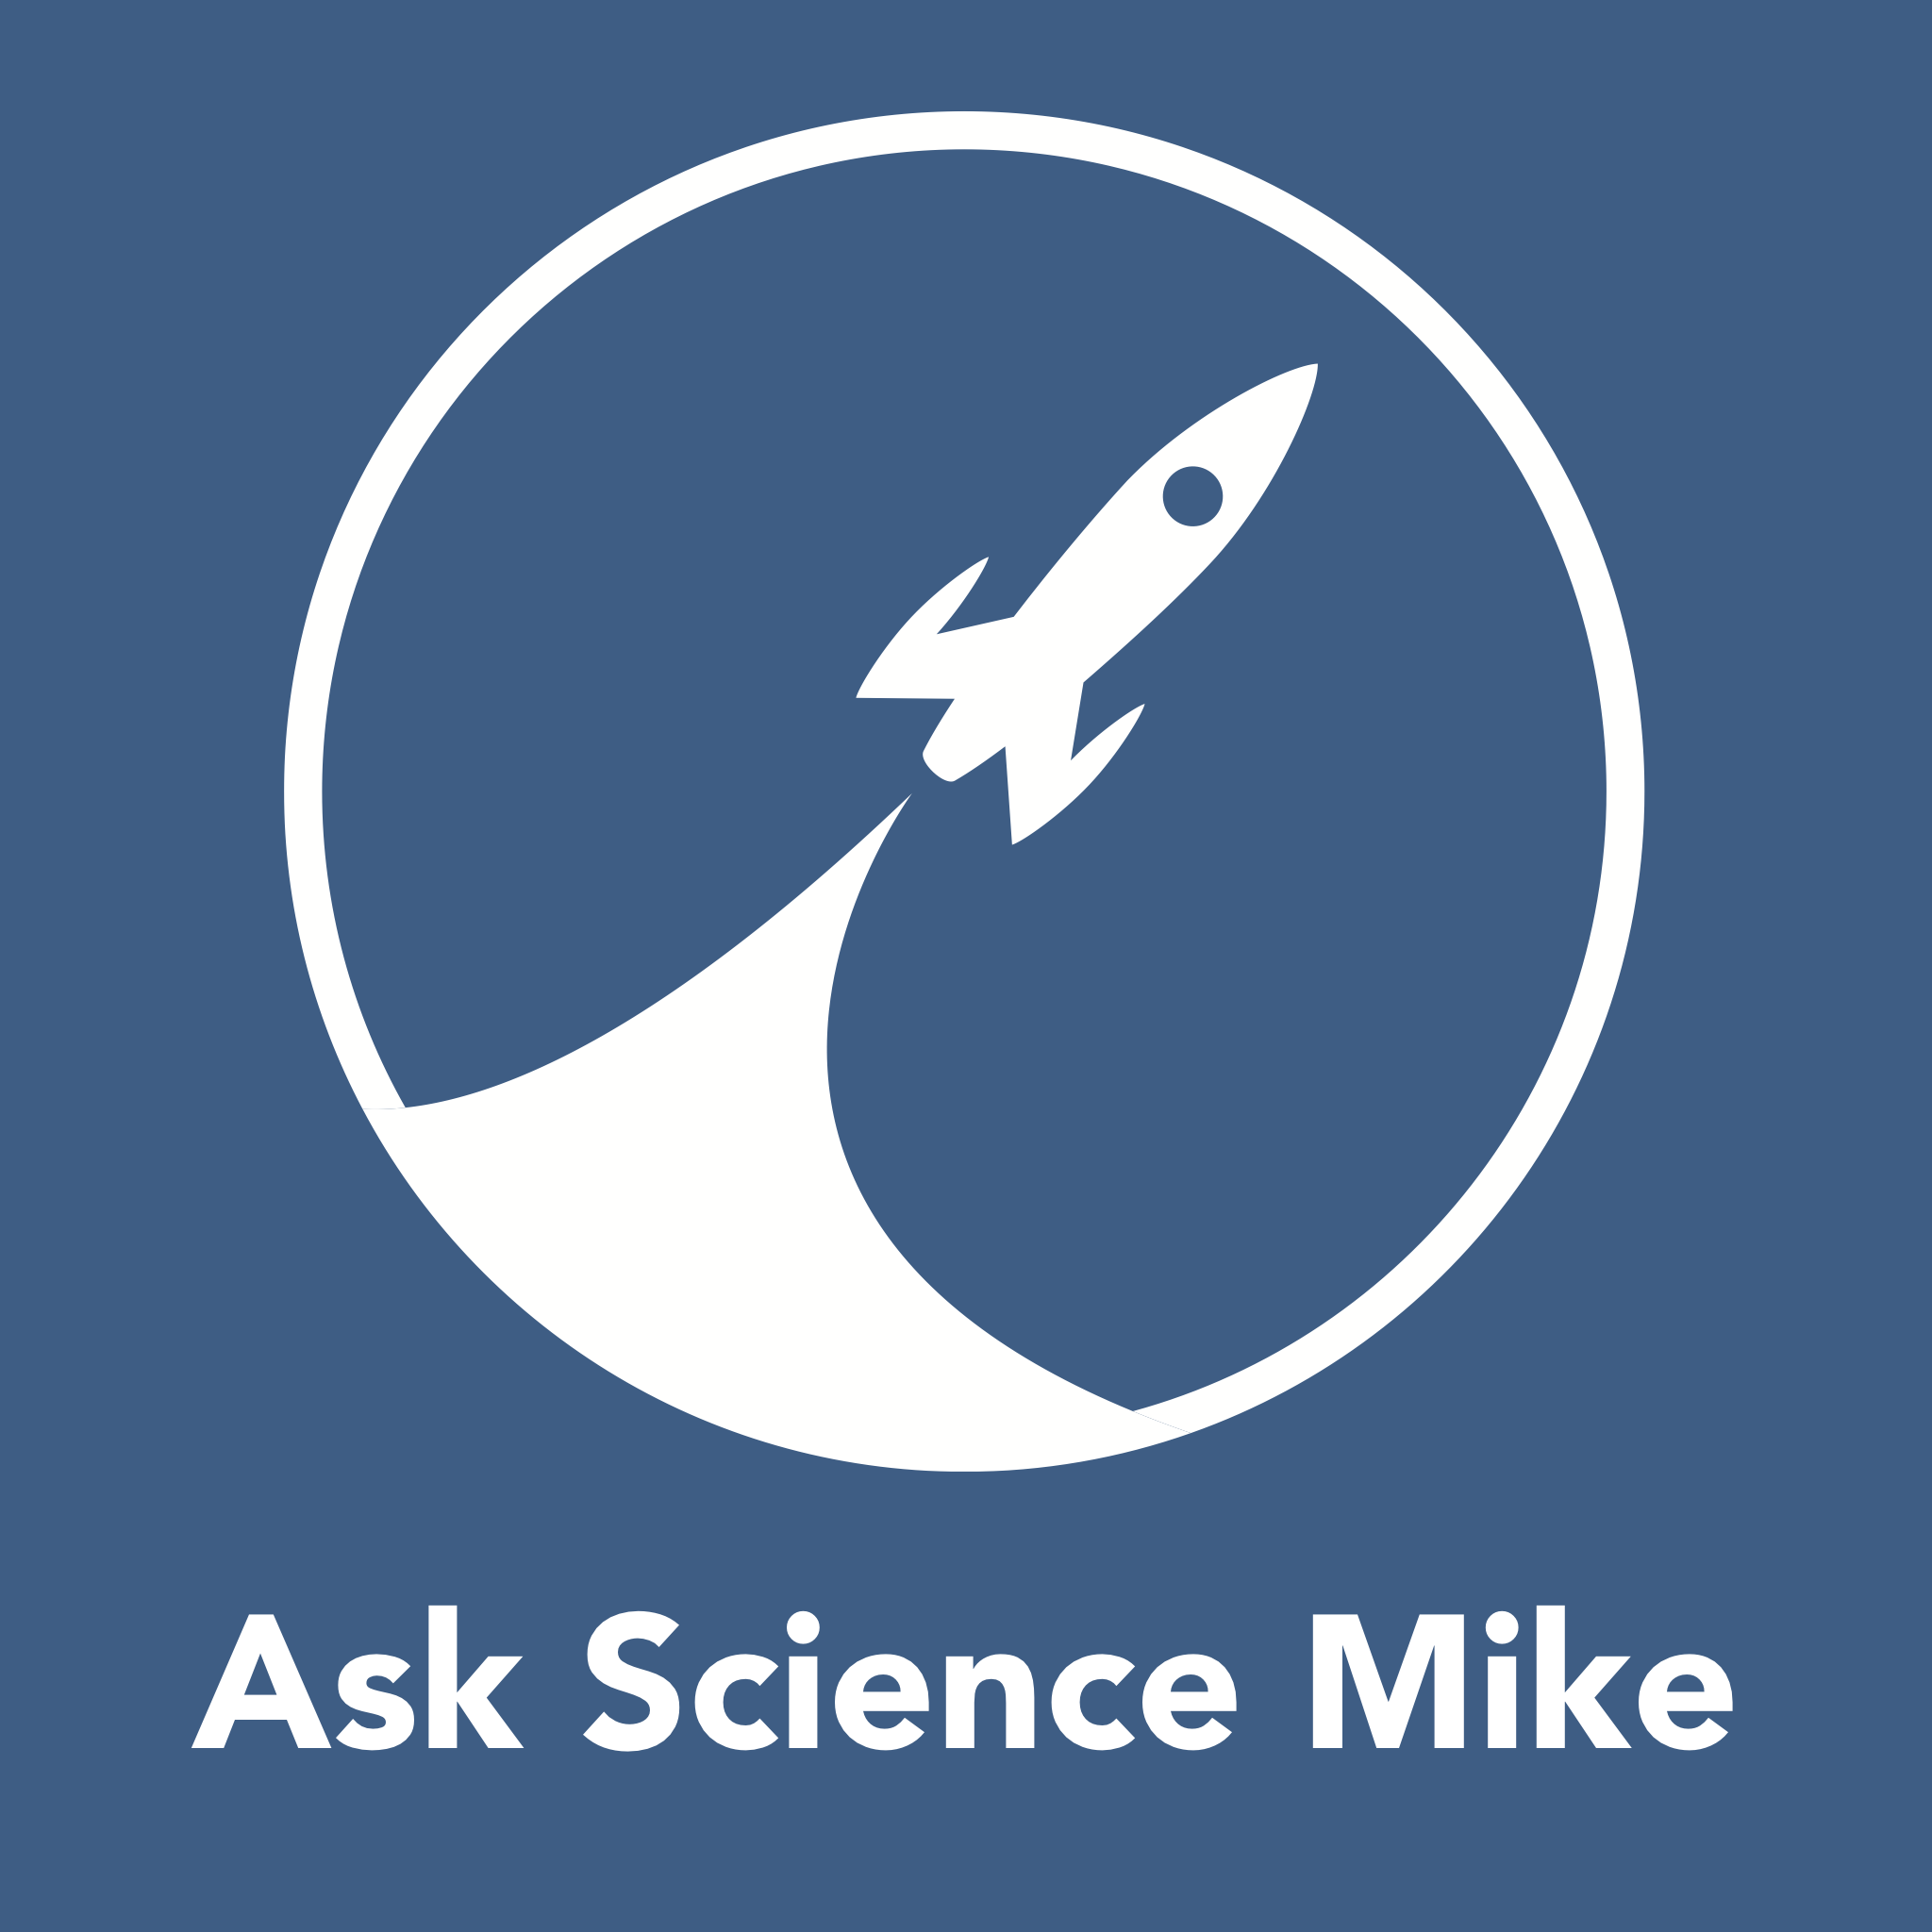 Ask Science Mike is a show about rewarding sincere questions with a nonjudgemental, supportive response.